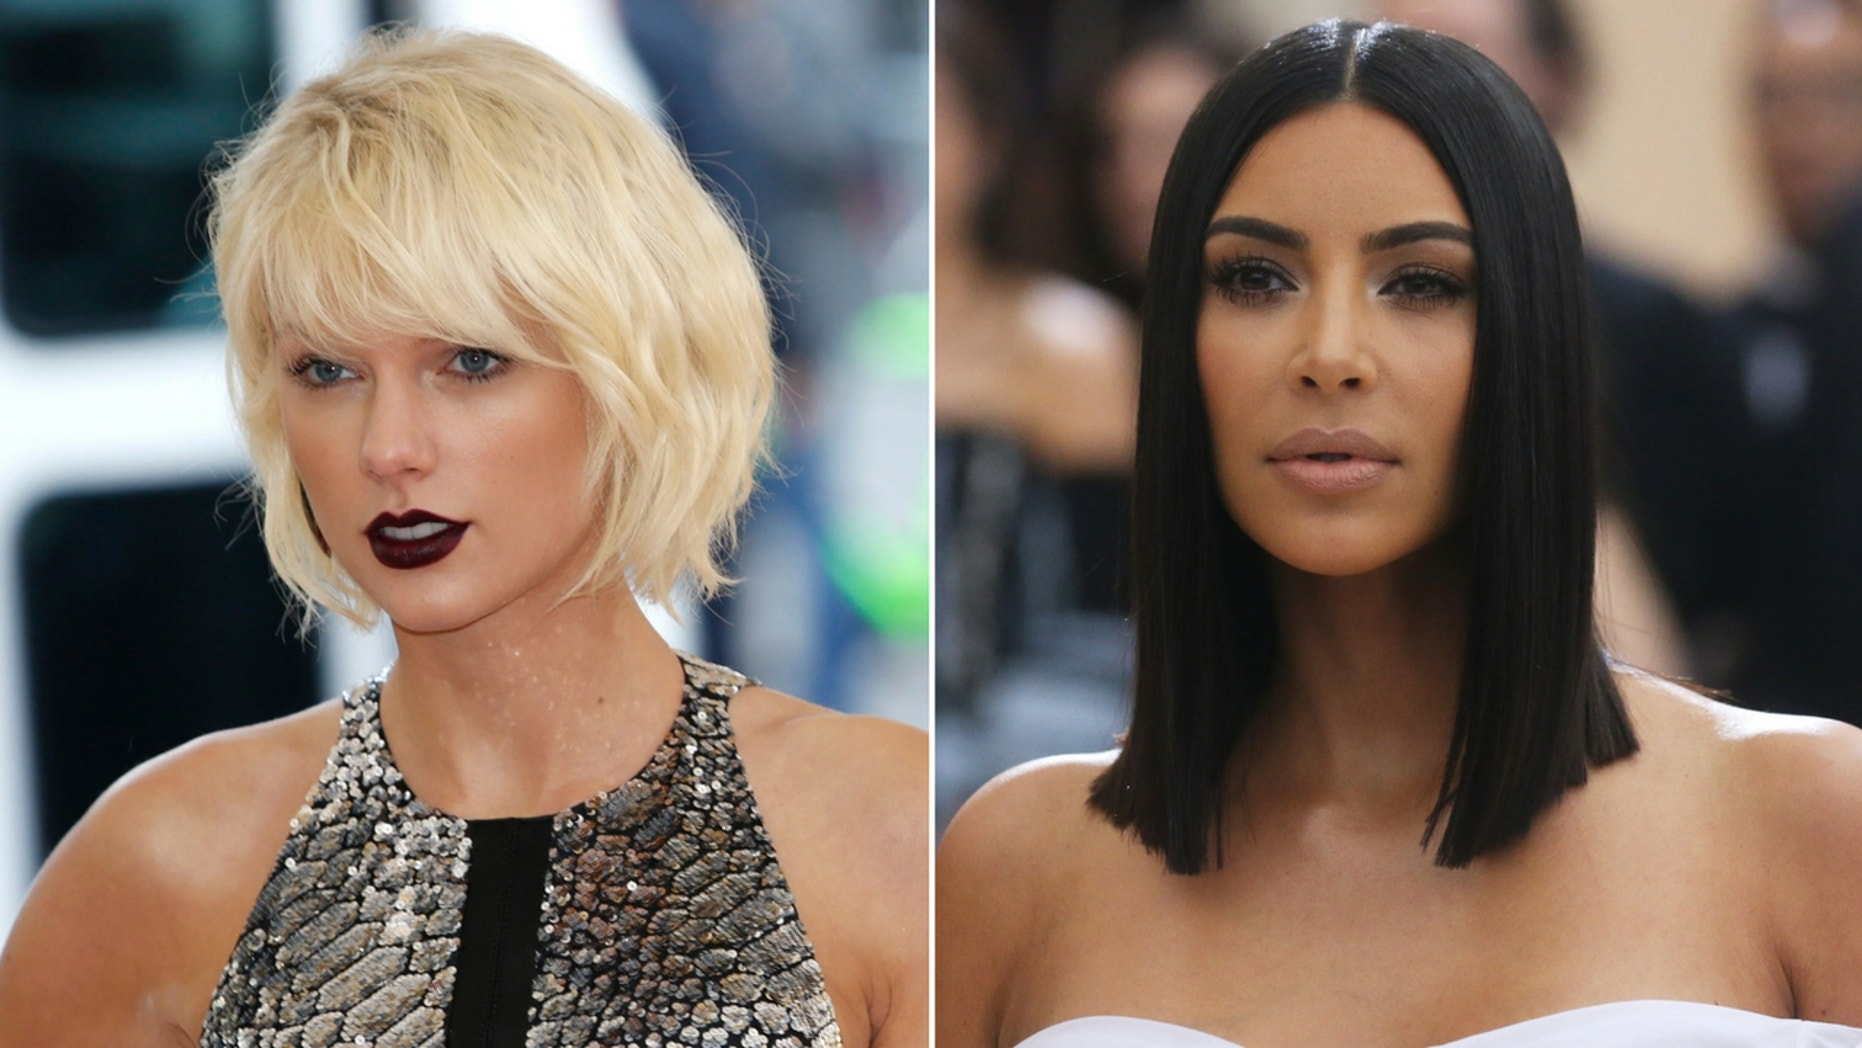 Kim Kardashian may have reignited the feud she has with Taylor Swift.